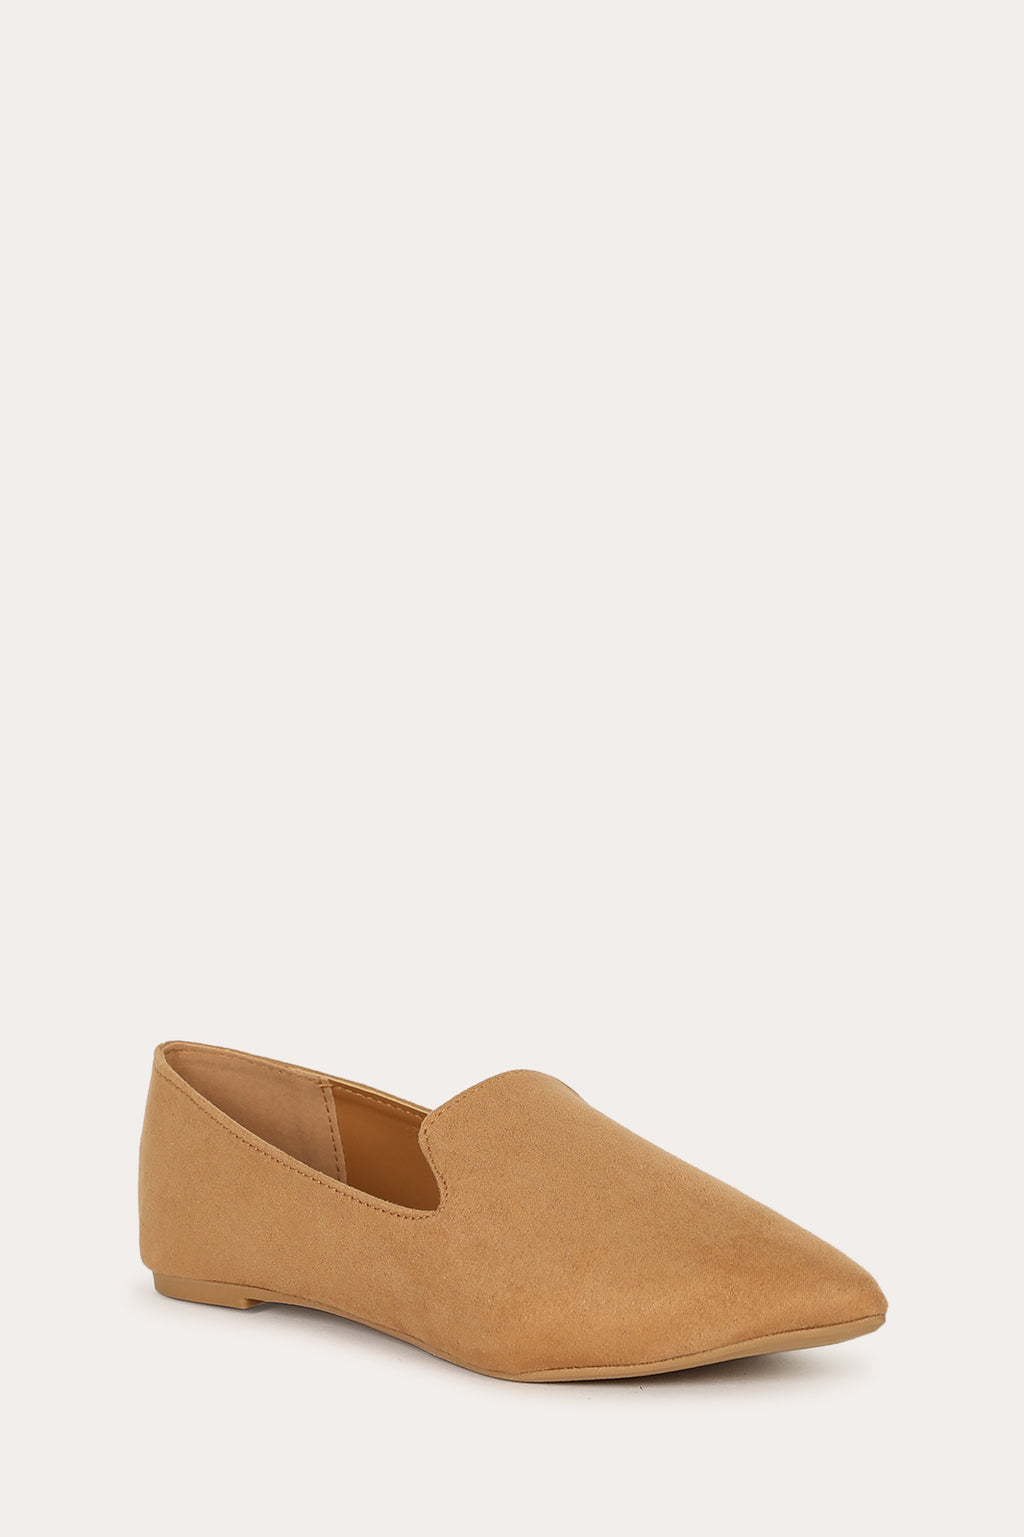 Making Moves - Butterscotch Loafer Flats